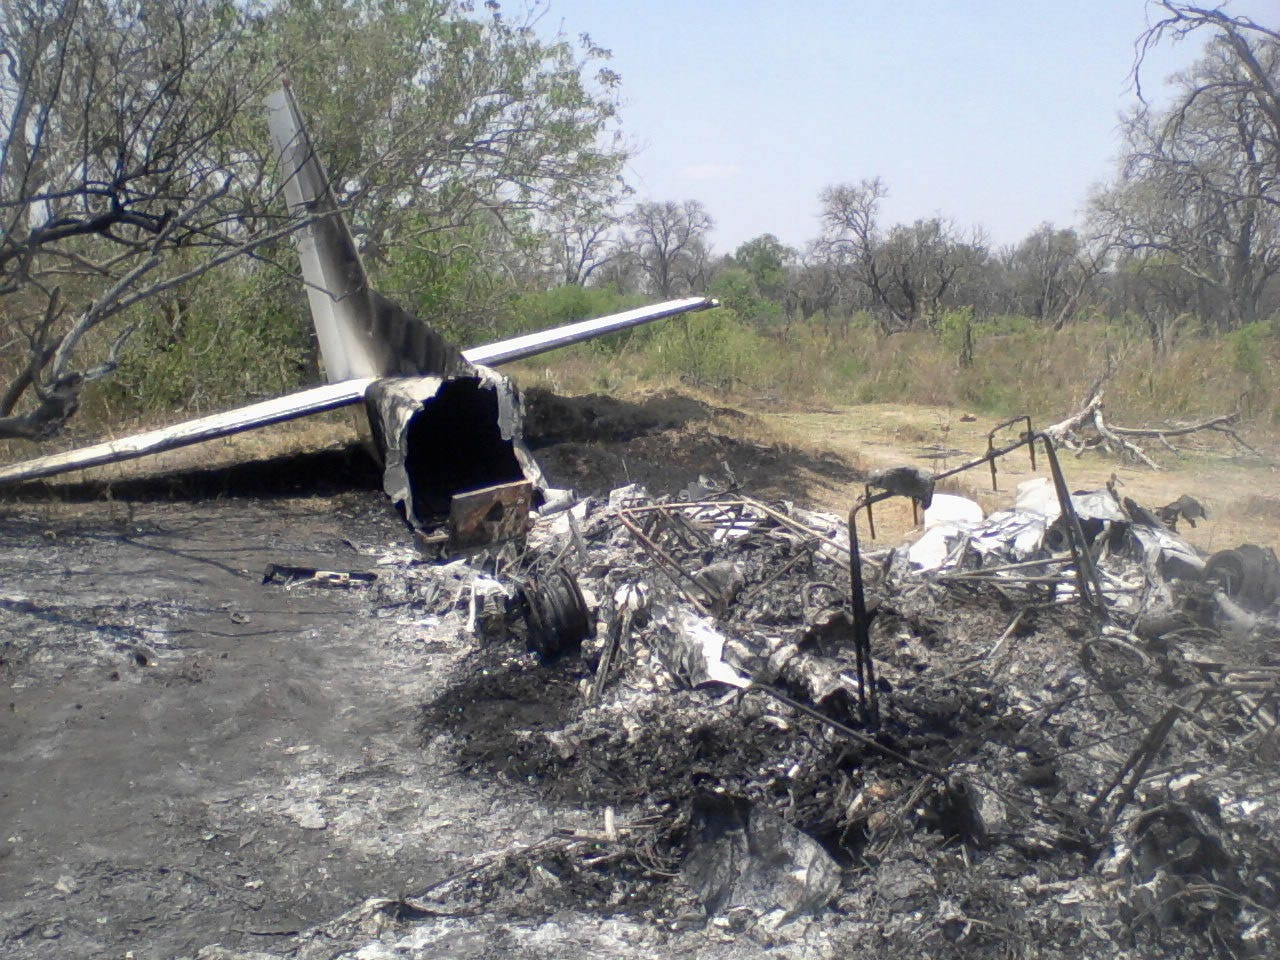 Plane Crash Bodies Photos Botswana plane crash_higg.jpg